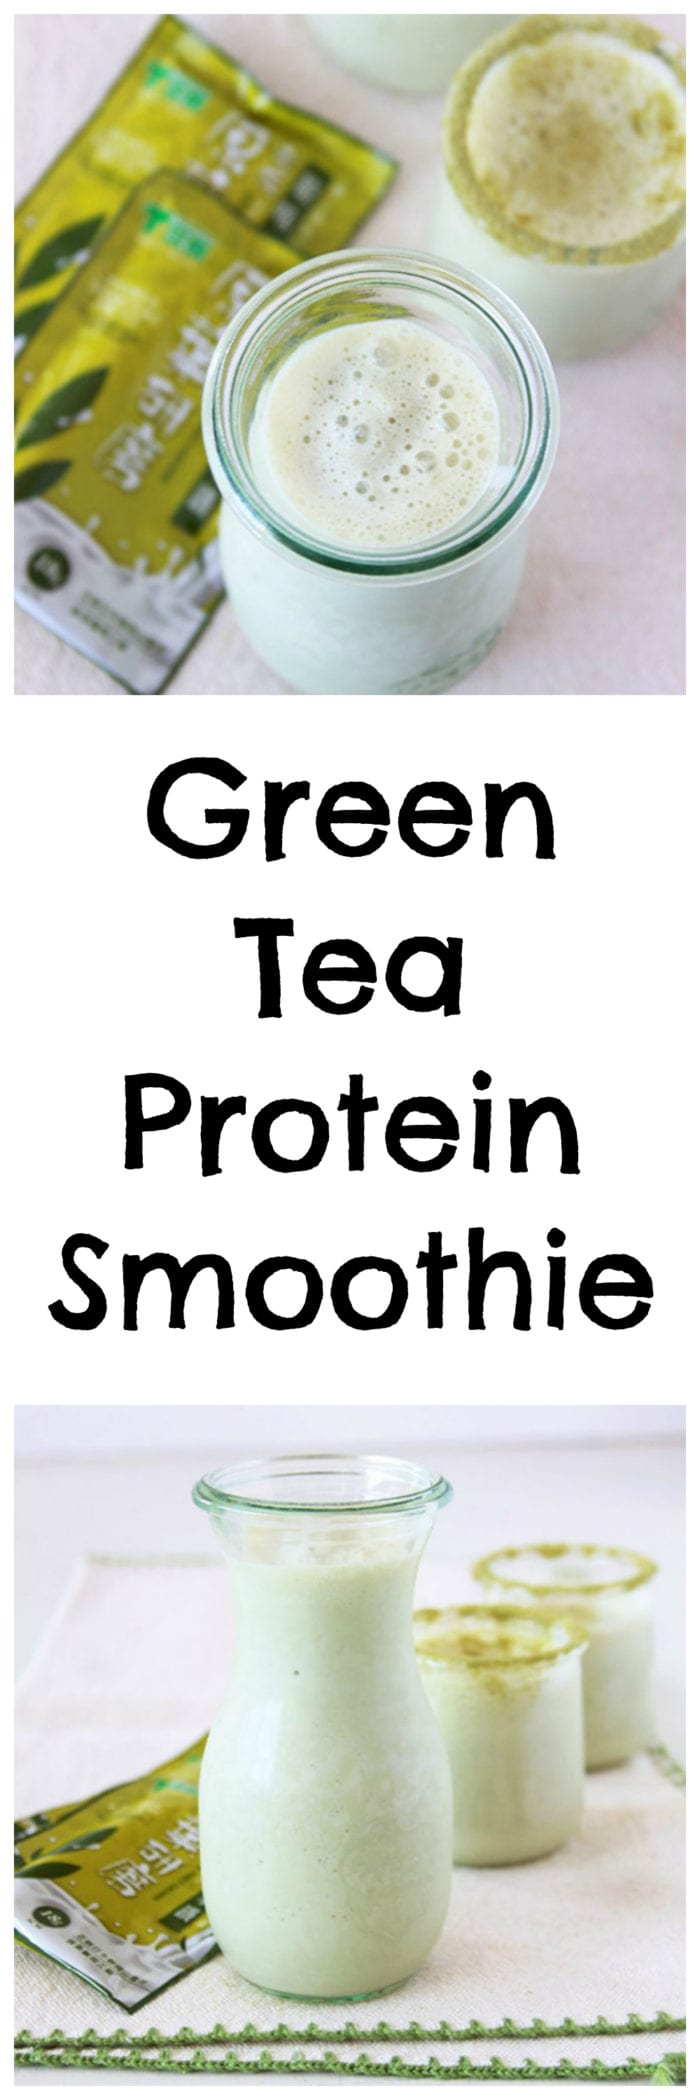 Green Tea Protein Smoothie is one our favorites and good for your body too! www.cookingwithruthie.com